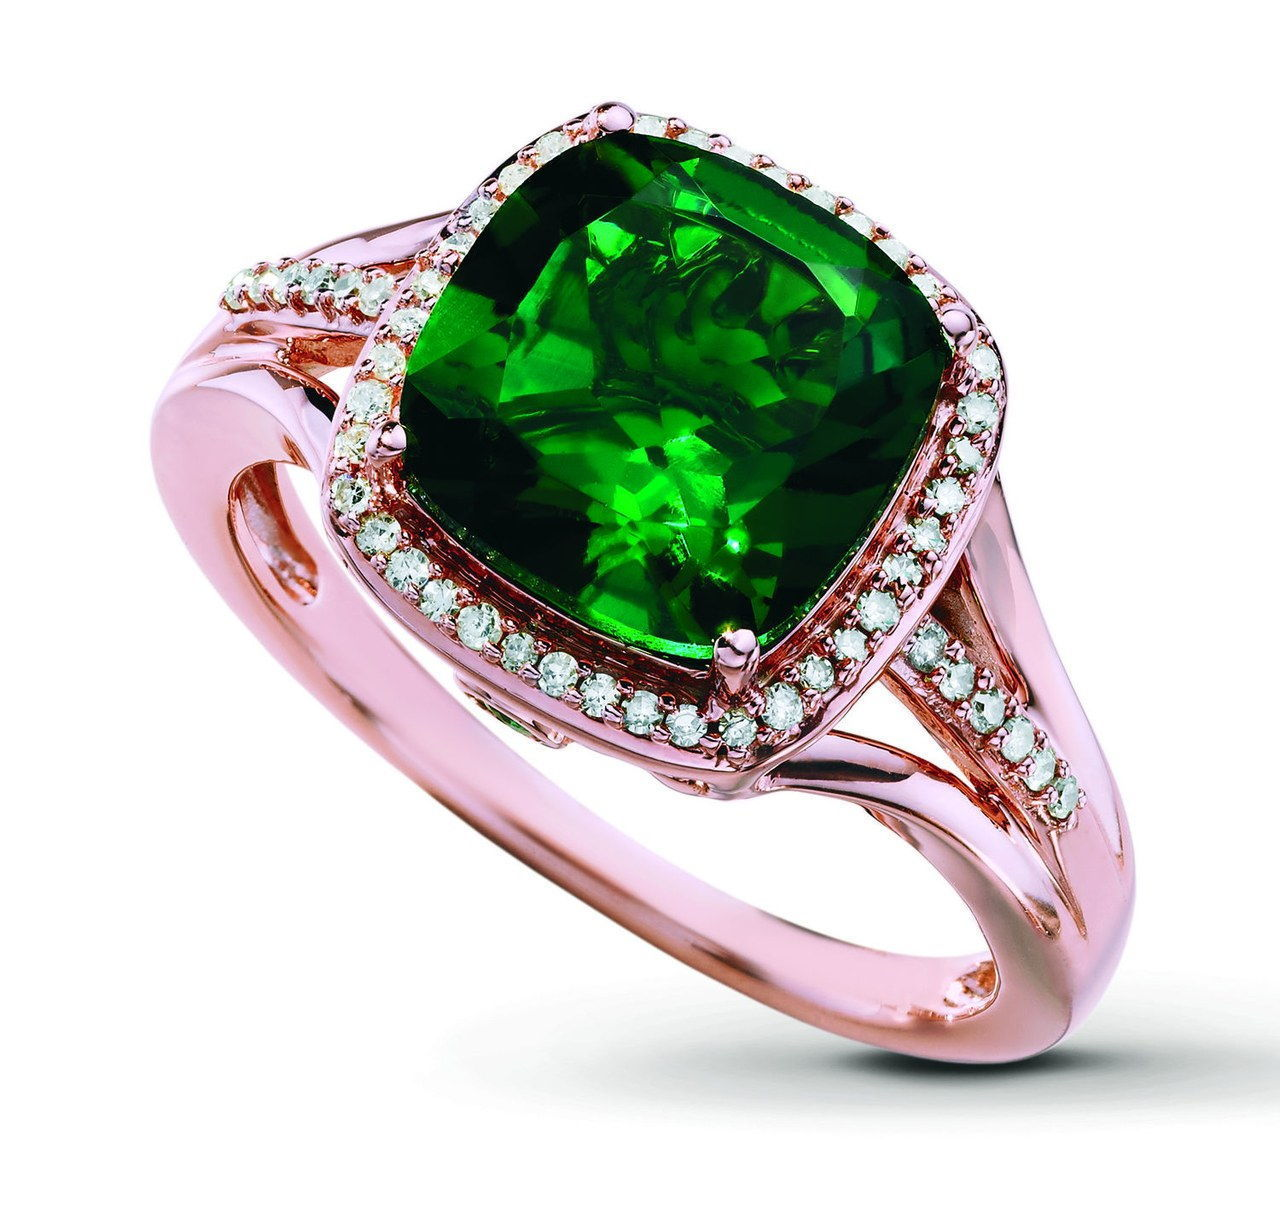 Sofija vergara kays jewelry emerald ring